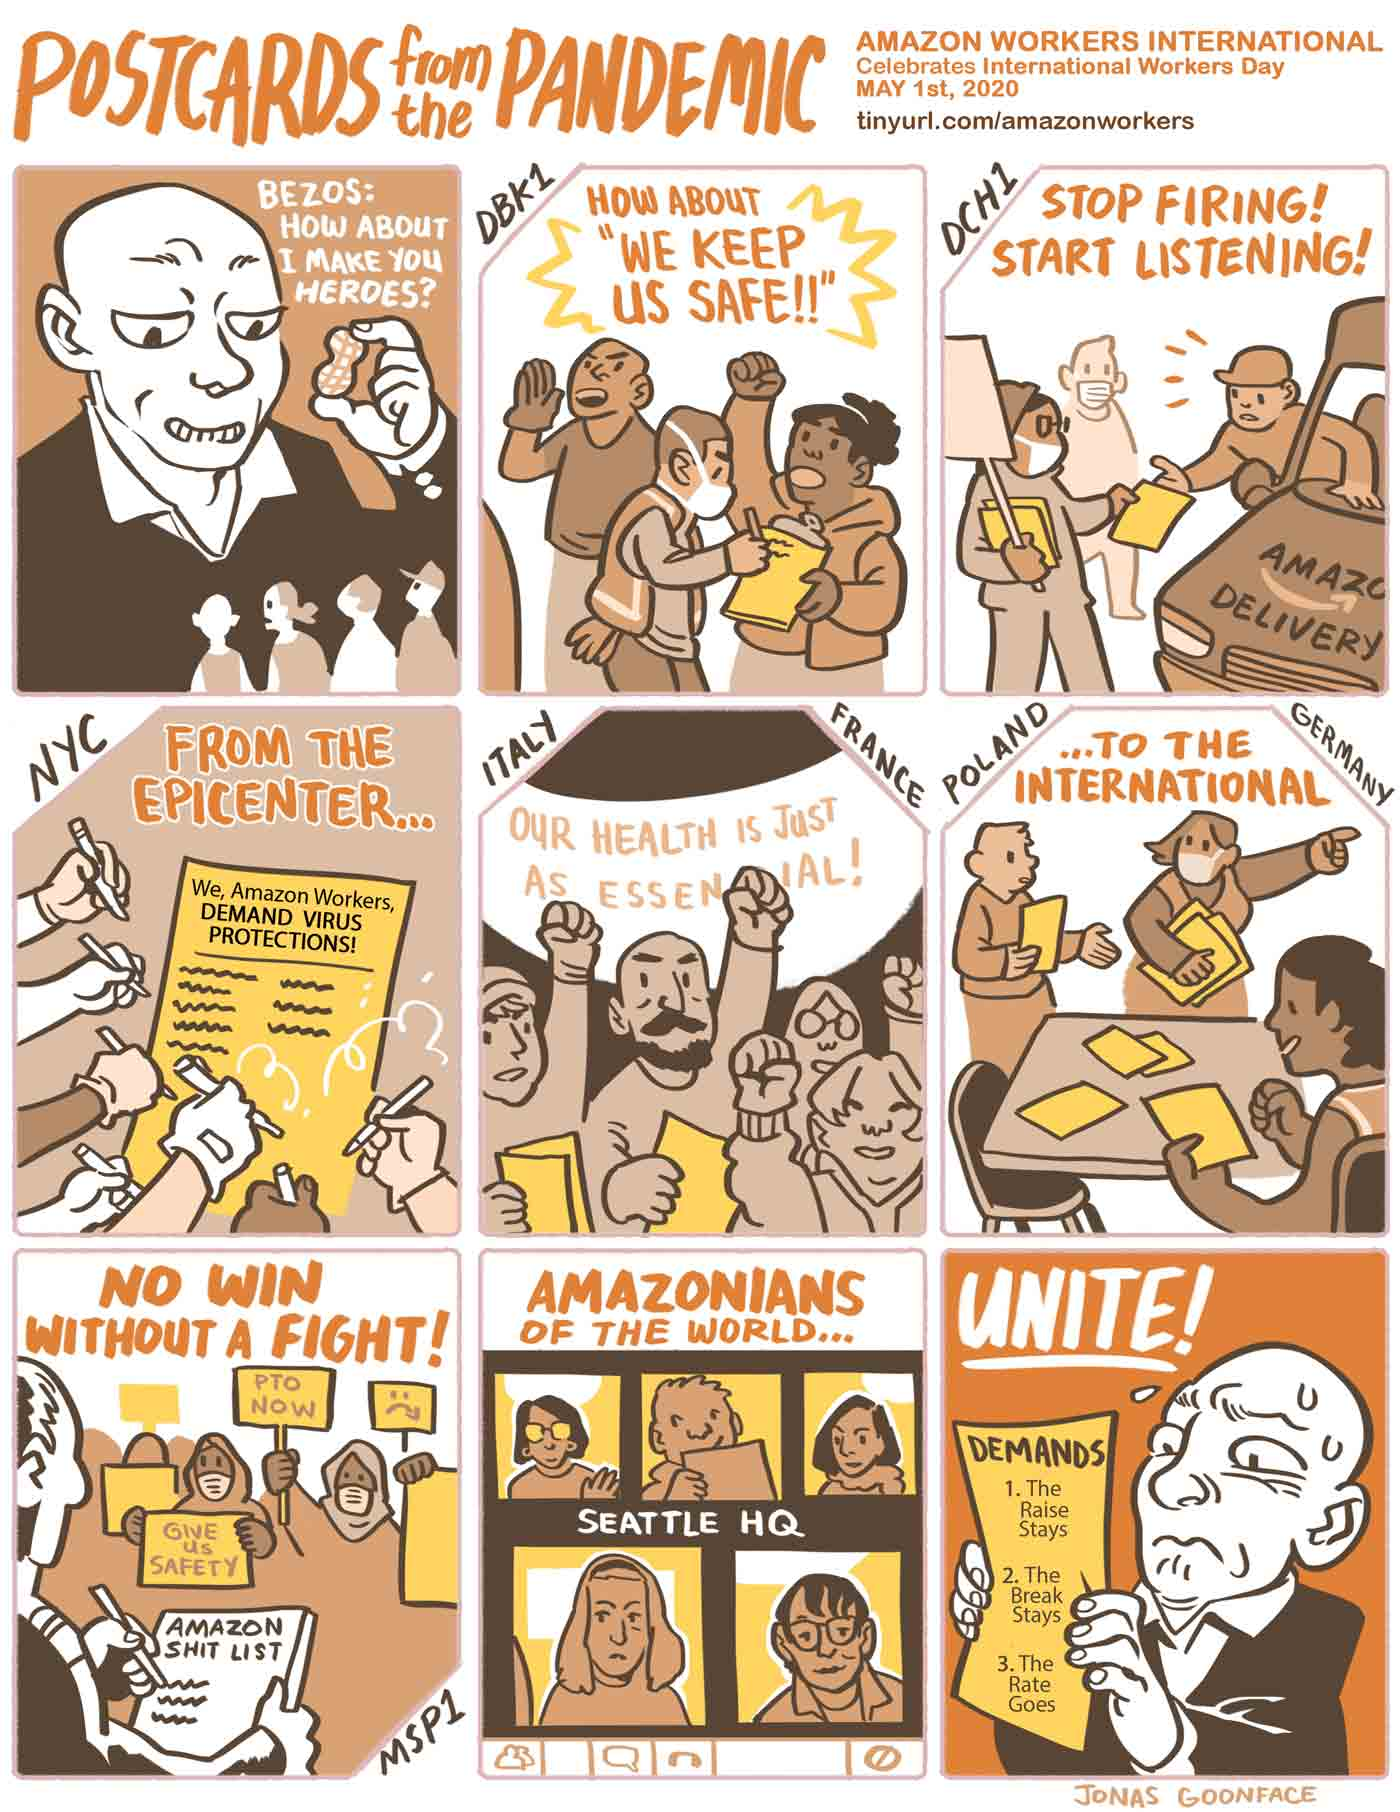 """Comic in English entitled """"Postcards from the Pandemic"""" for Amazon Workers International. Jeff Bezos offers workers the 'peanut' of calling the workers heroes. The workers counter with demands for safety. Amazonians of the World, Unite!"""